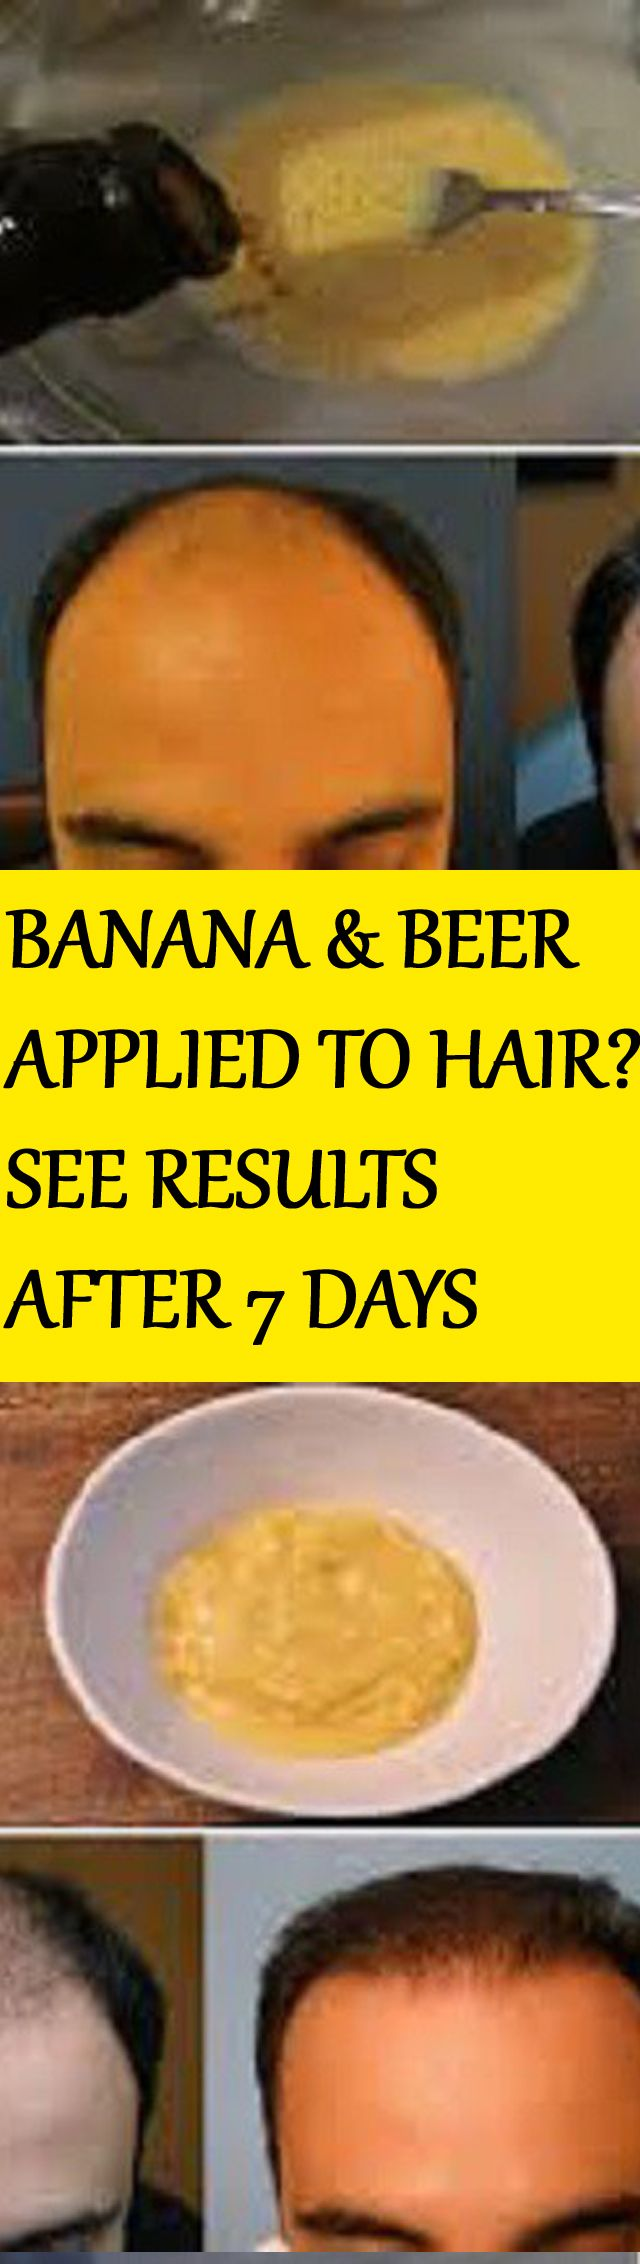 HE MIXED BANANA AND BEER AND APPLIED IT TO HIS HAIR – THE RESULTS AFTER 7 DAYS…UNBELIEVABLE!